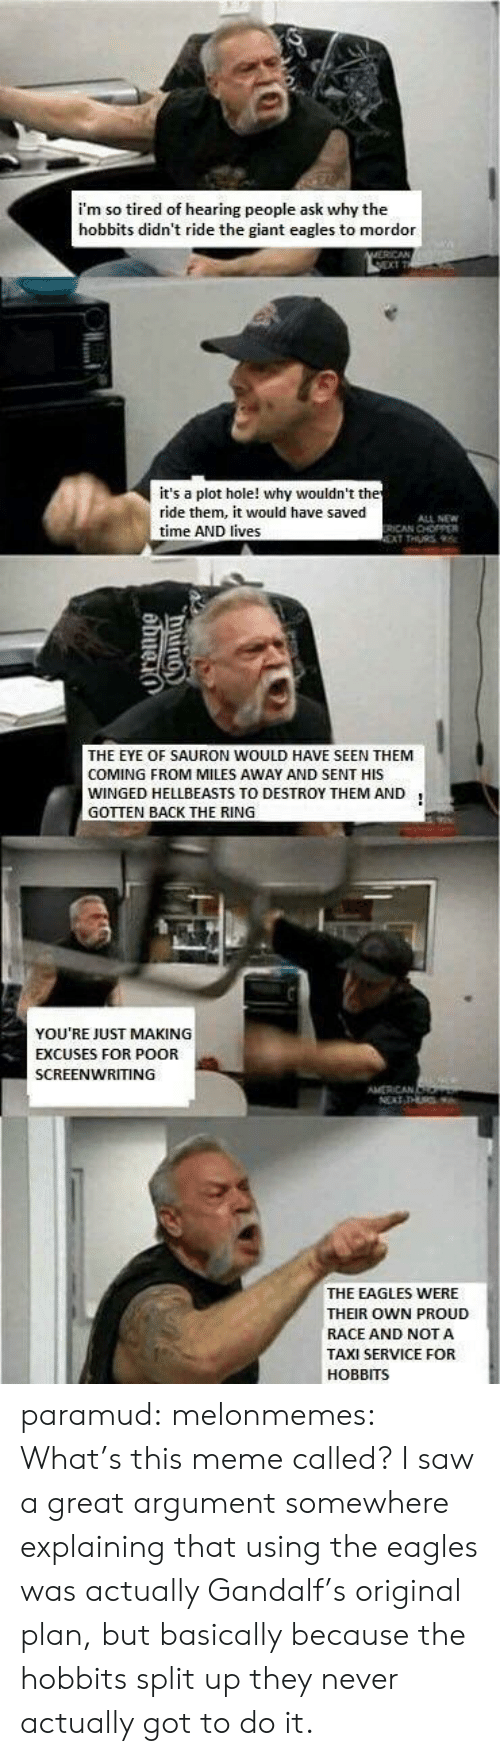 sauron: i'm so tired of hearing people ask why the  hobbits didn't ride the giant eagles to mordor  it's a plot hole! why wouldn't th  ride them, it would have saved  time AND lives  ALL NEW  ICAN CHOPPER  THE EYE OF SAURON WOULD HAVE SEEN THEM  COMING FROM MILES AWAY AND SENT HIS  WINGED HELLBEASTS TO DESTROY THEM AND1  GOTTEN BACK THE RING  YOU'RE JUST MAKING  EXCUSES FOR POOR  SCREENWRITING  AMERICAN  THE EAGLES WERE  THEIR OWN PROUD  RACE AND NOT A  TAXI SERVICE FOR  HOBBITS paramud:  melonmemes:  What's this meme called?  I saw a great argument somewhere explaining that using the eagles was actually Gandalf's original plan, but basically because the hobbits split up they never actually got to do it.